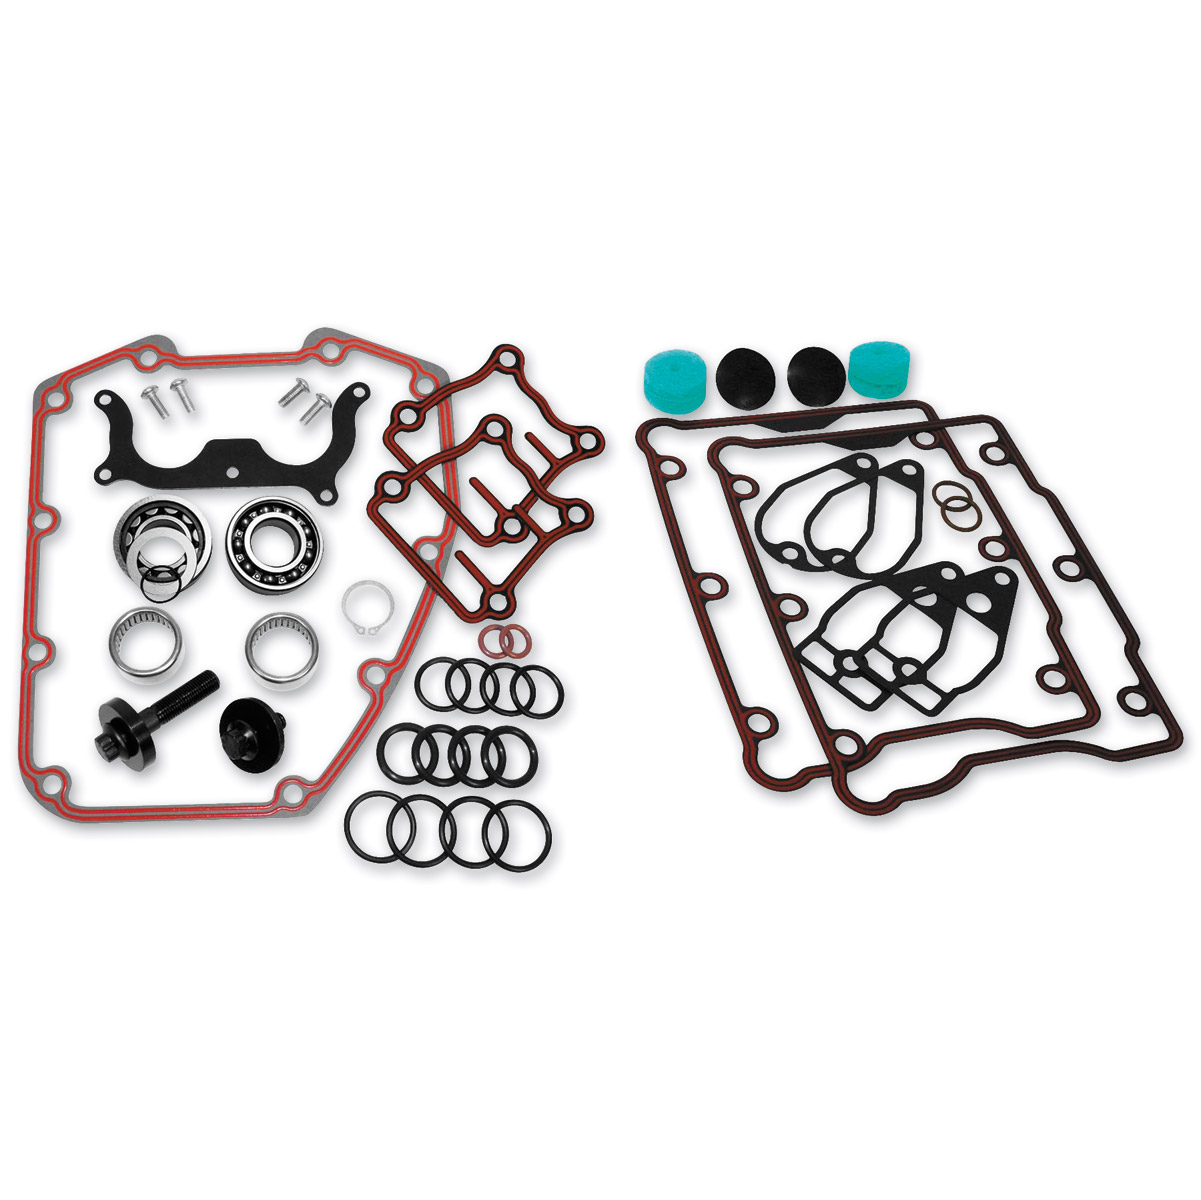 Feuling Chain Drive Camshaft Install Plus Kit for Twin Cam